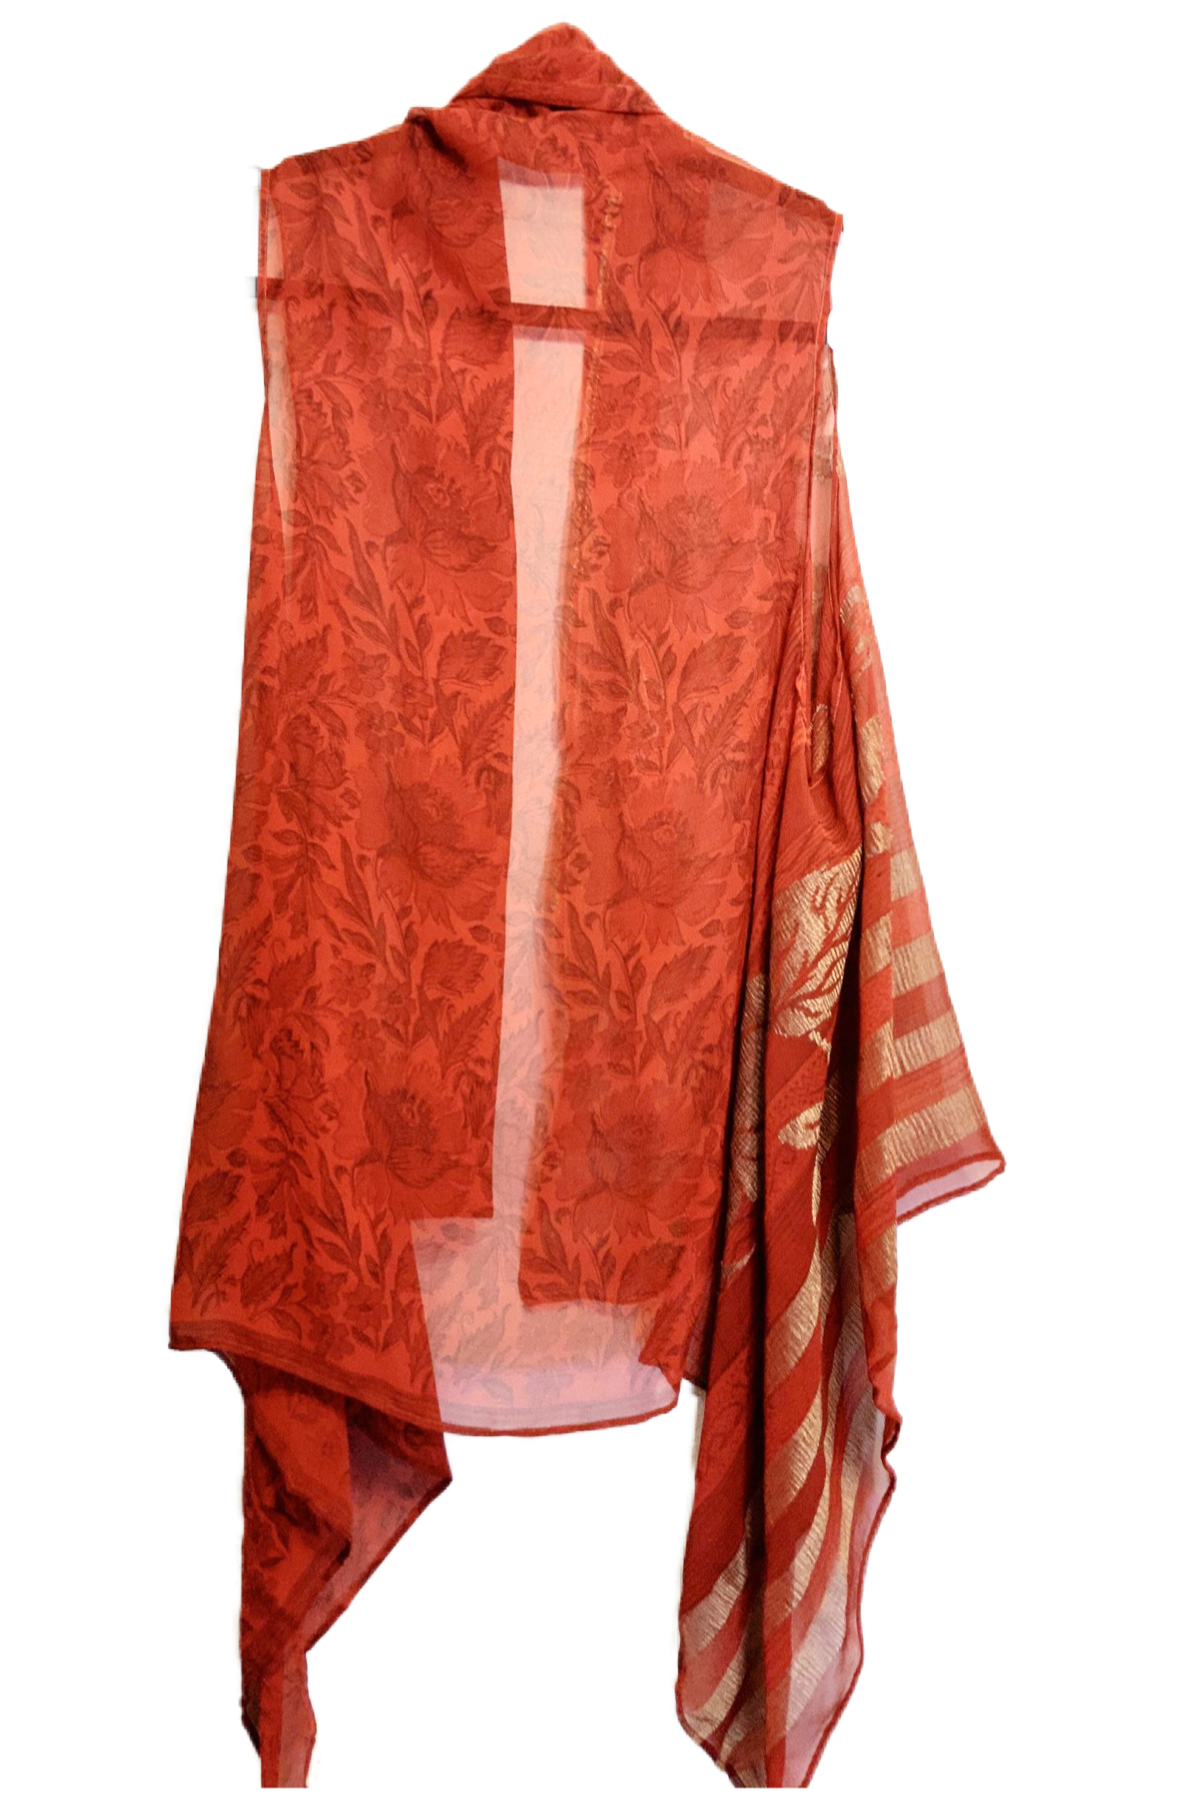 Baroque Sheer Pure Silk Versatile Vest - sariKNOTsari slow fashion bryn walker linen Hamilton sustainable fashion gifts sari not sari Hamilton Fair trade  Ethical  Artisan made  Zero waste  Up-cycled Slow Fashion  Handmade  GTA Toronto Copper Pure Upcycled vintage silk handmade recycled recycle copper pure silk travel clothing hamilton vacation cruisewear resortwear bathing suit bathingsuit vacation etsy silk clothing gifts gift dress top pants linen bryn walker alive intentions kaarigar elephants